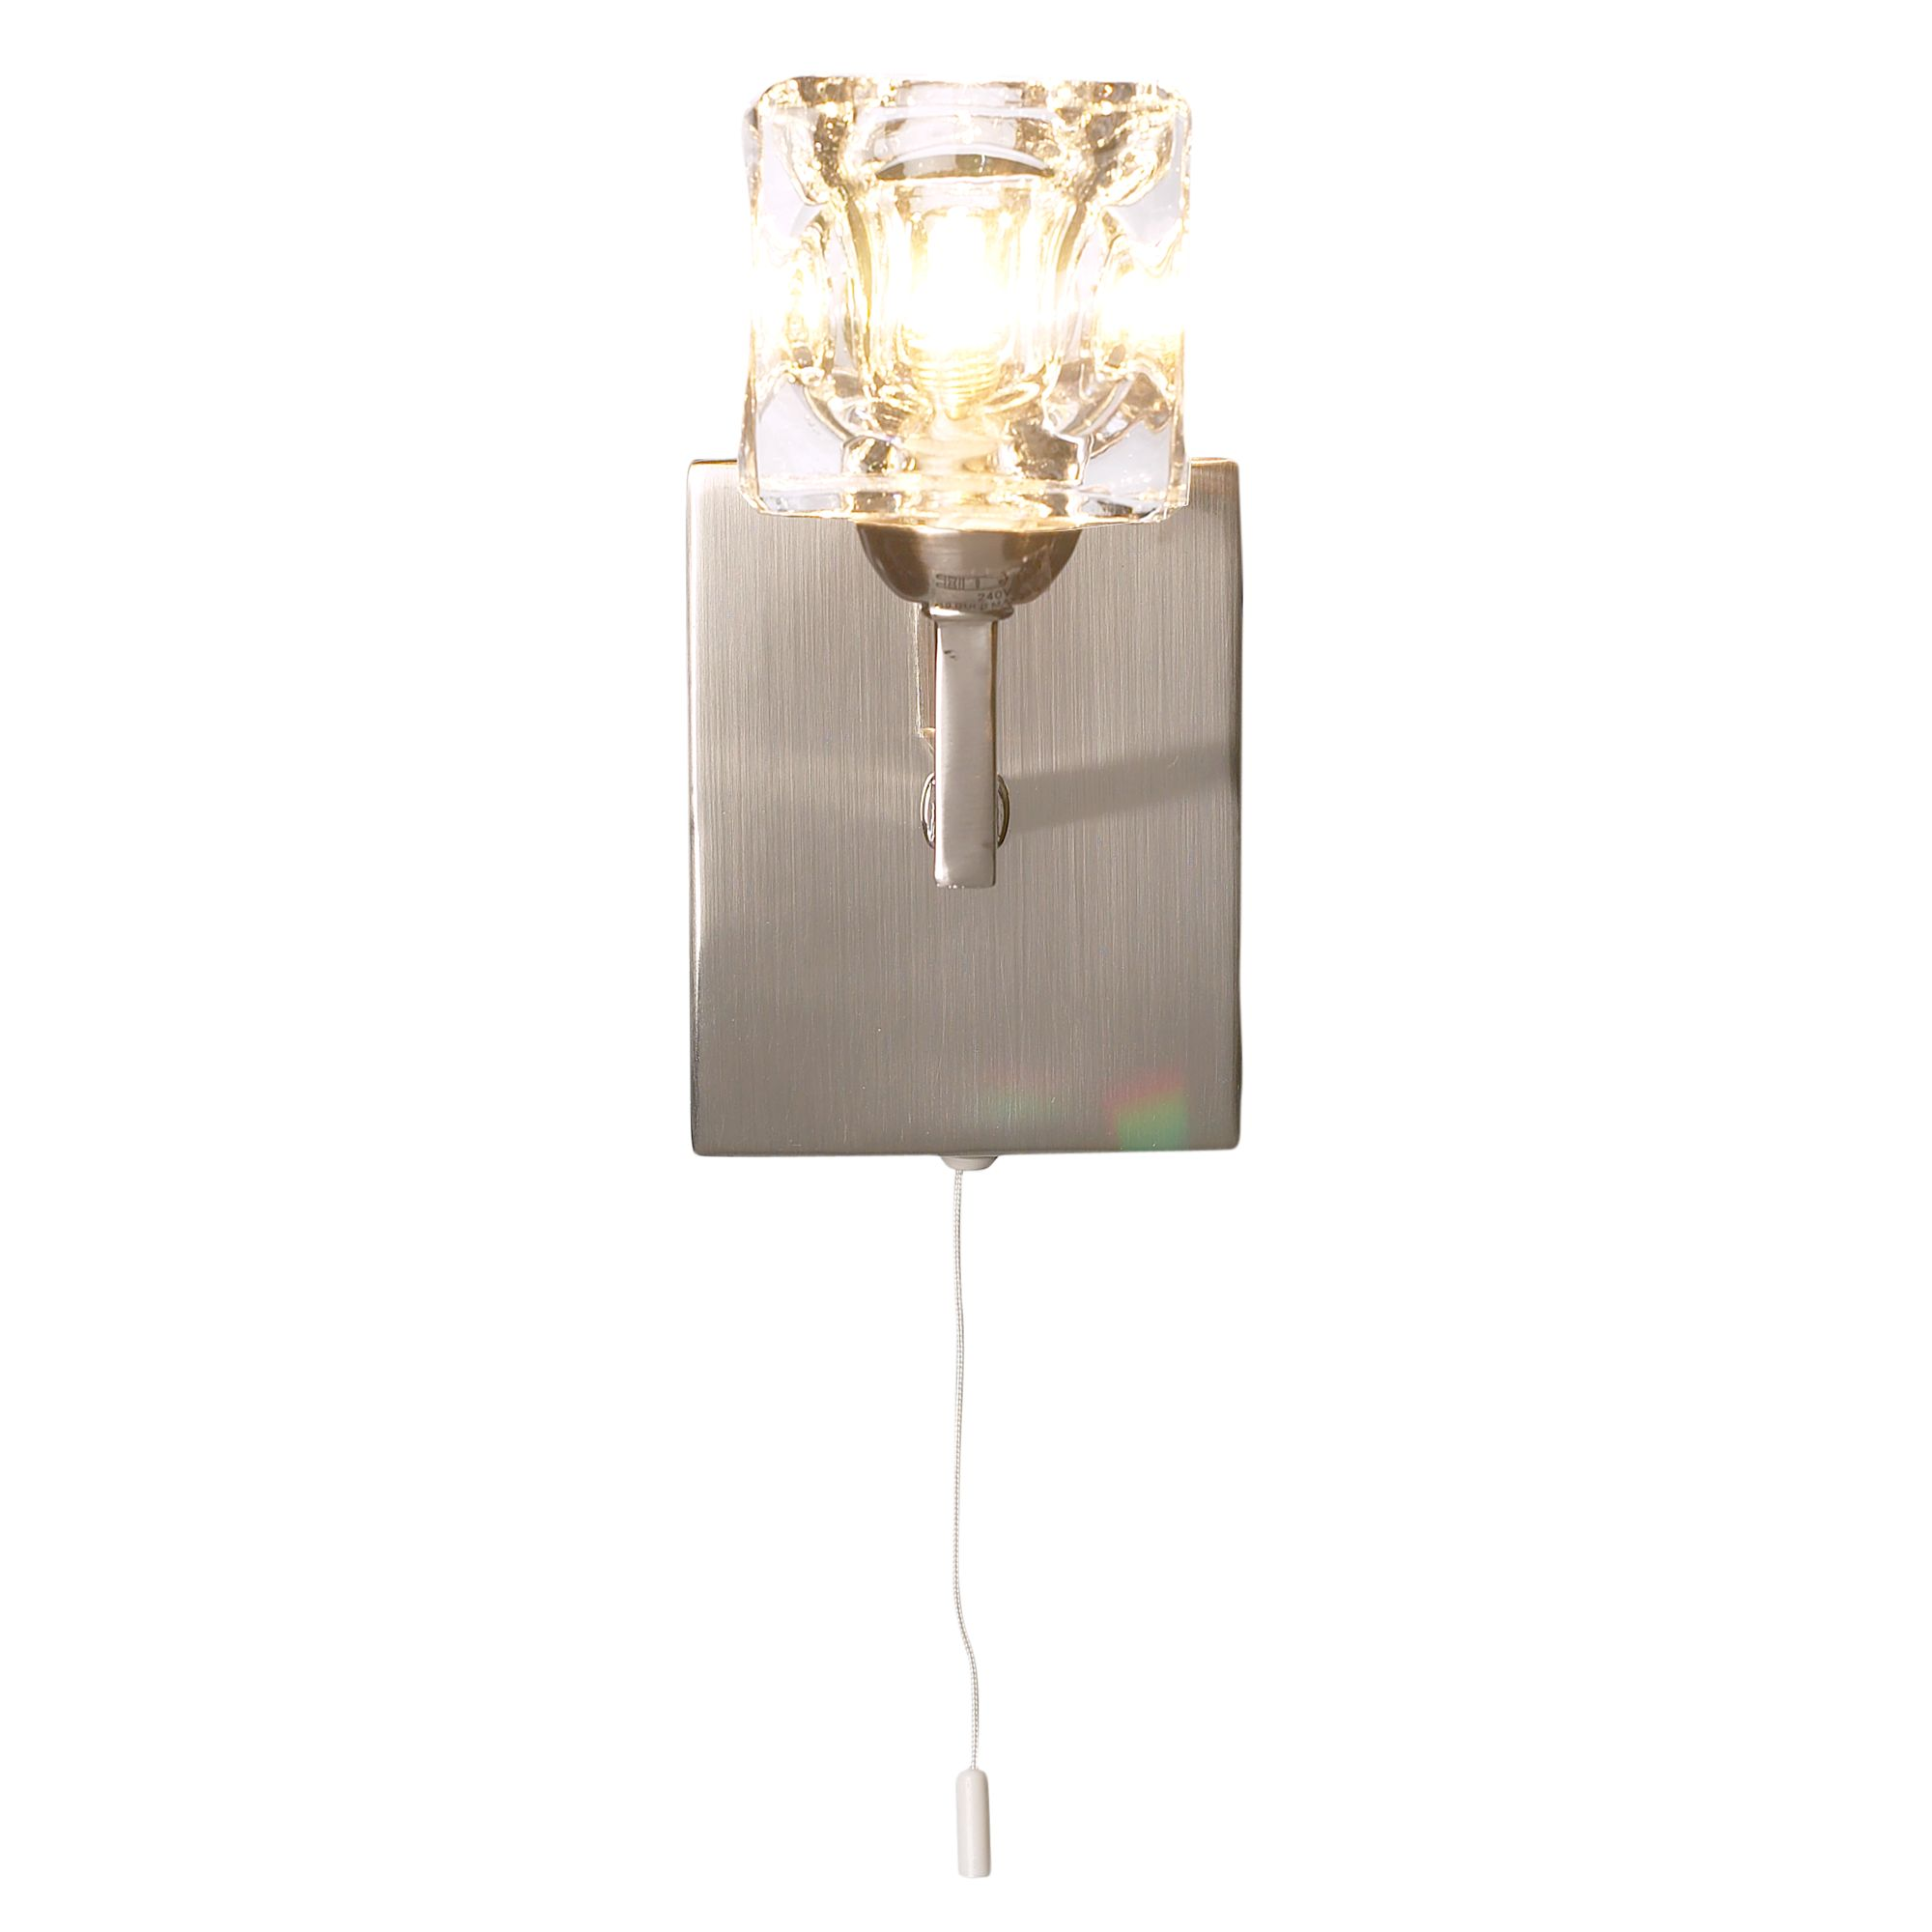 House of Fraser Ice cube 1 light wall light